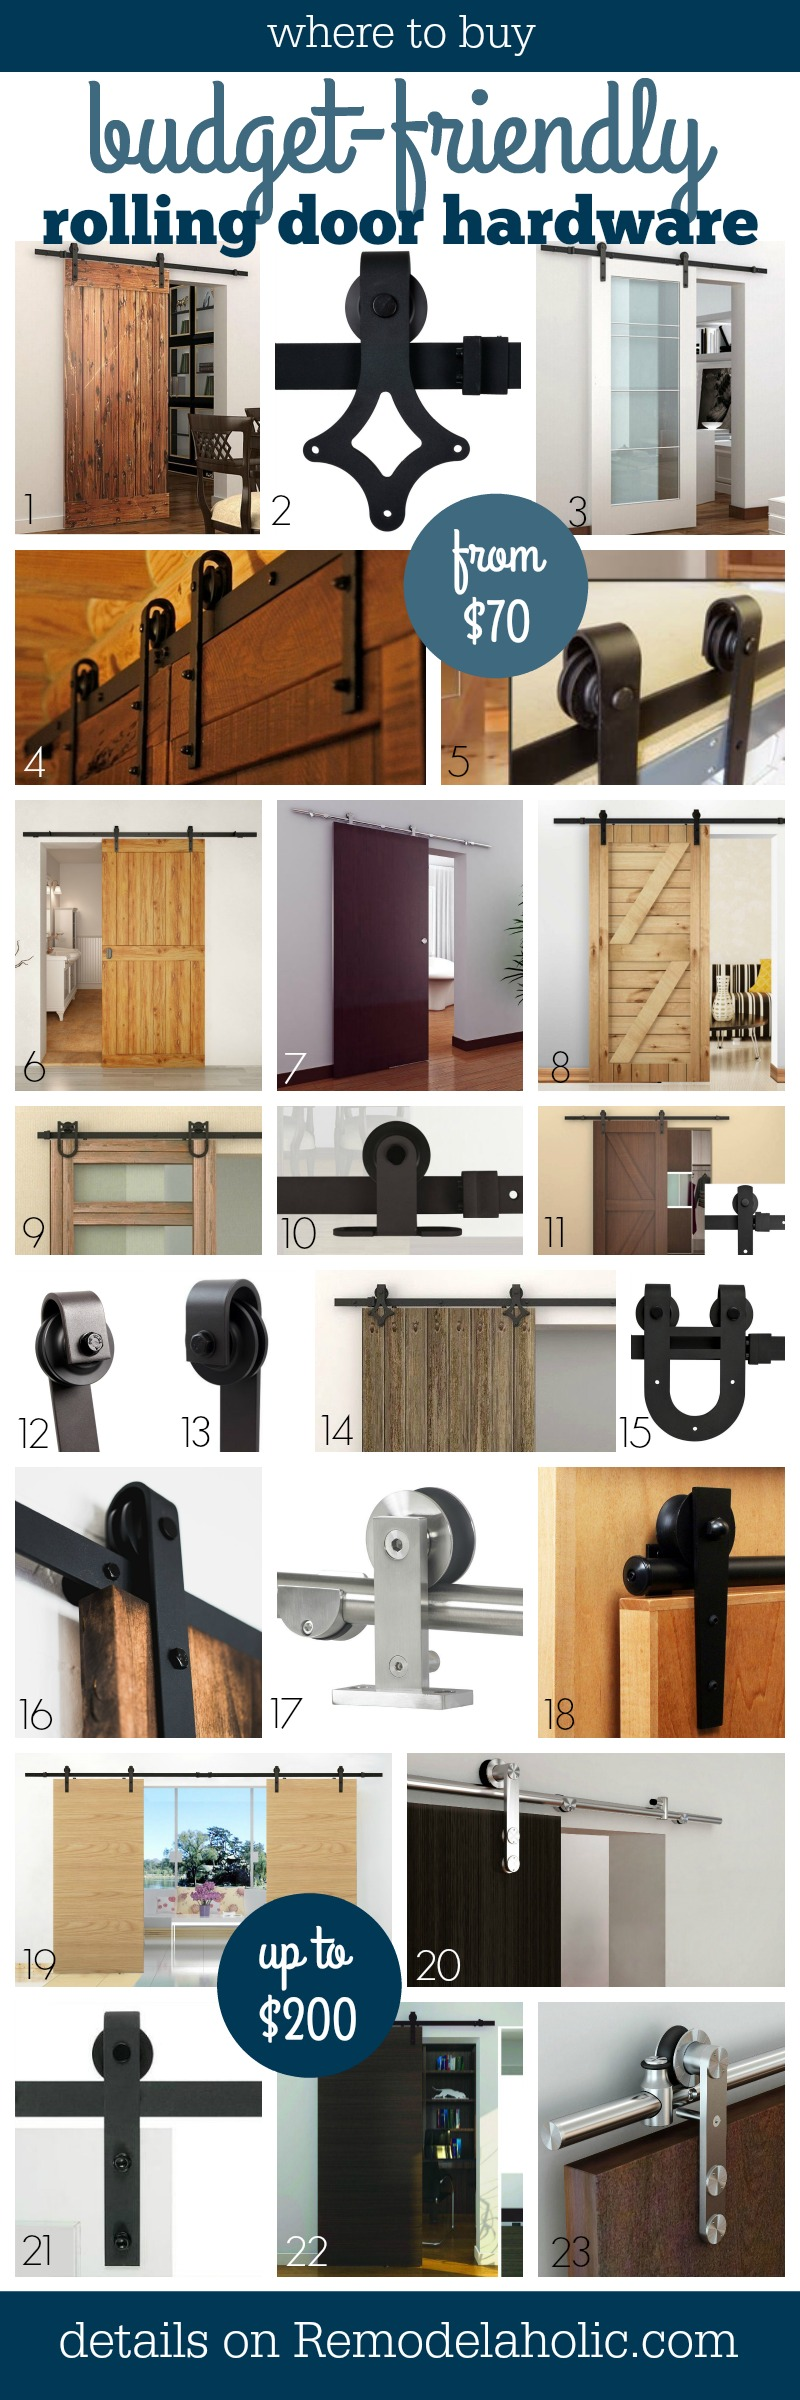 Where To Buy Budget Friendly Rolling Door Hardware For Barn Doors    Such A